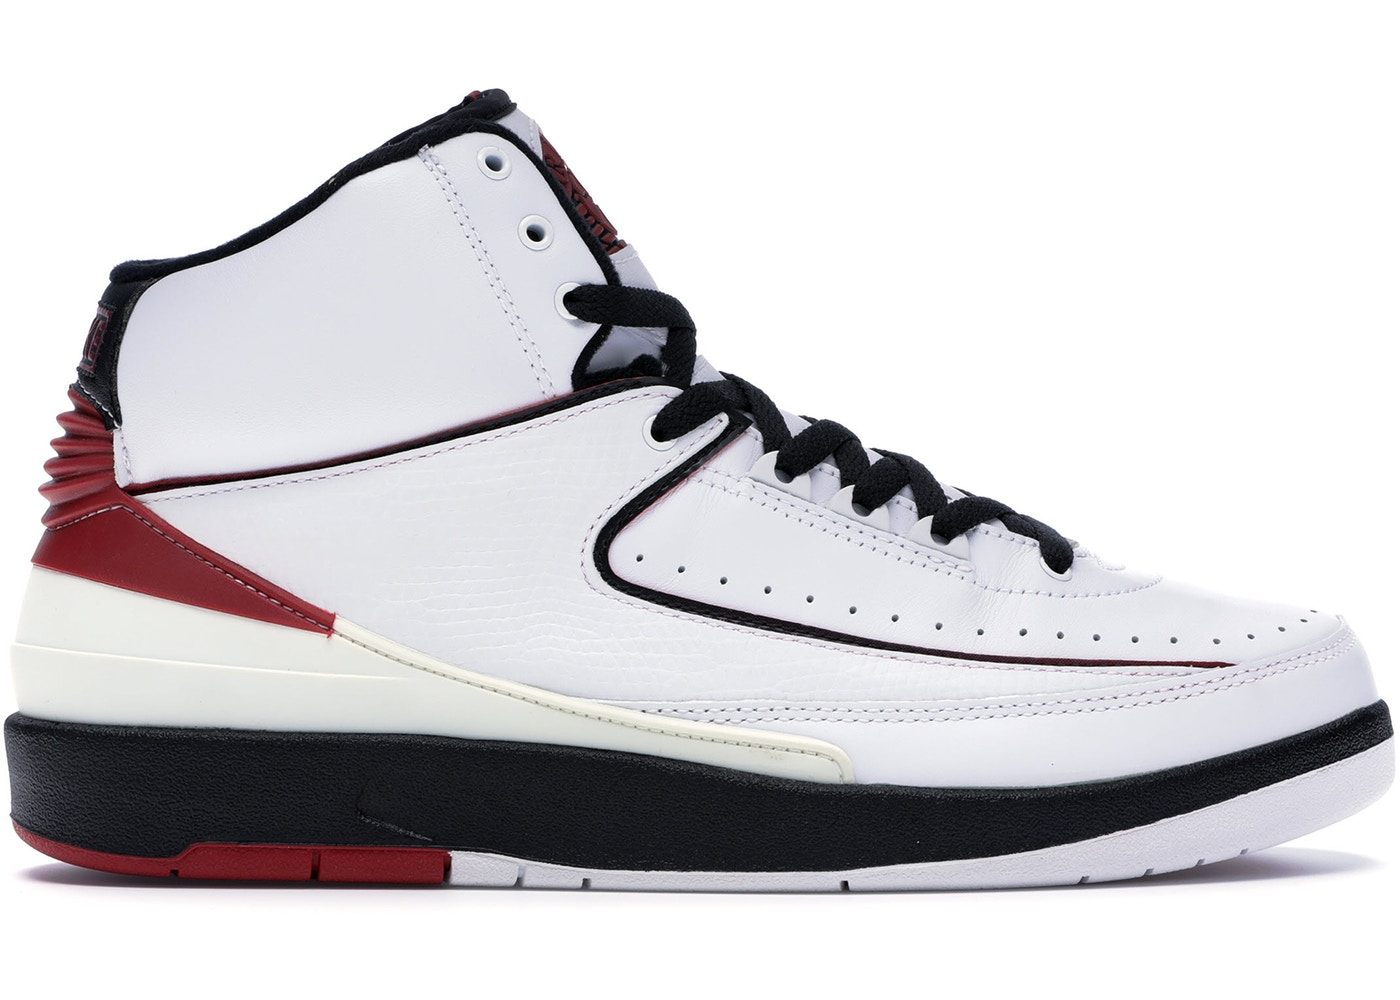 best service b29a9 6ba97 Buy Air Jordan 2 Shoes   Deadstock Sneakers